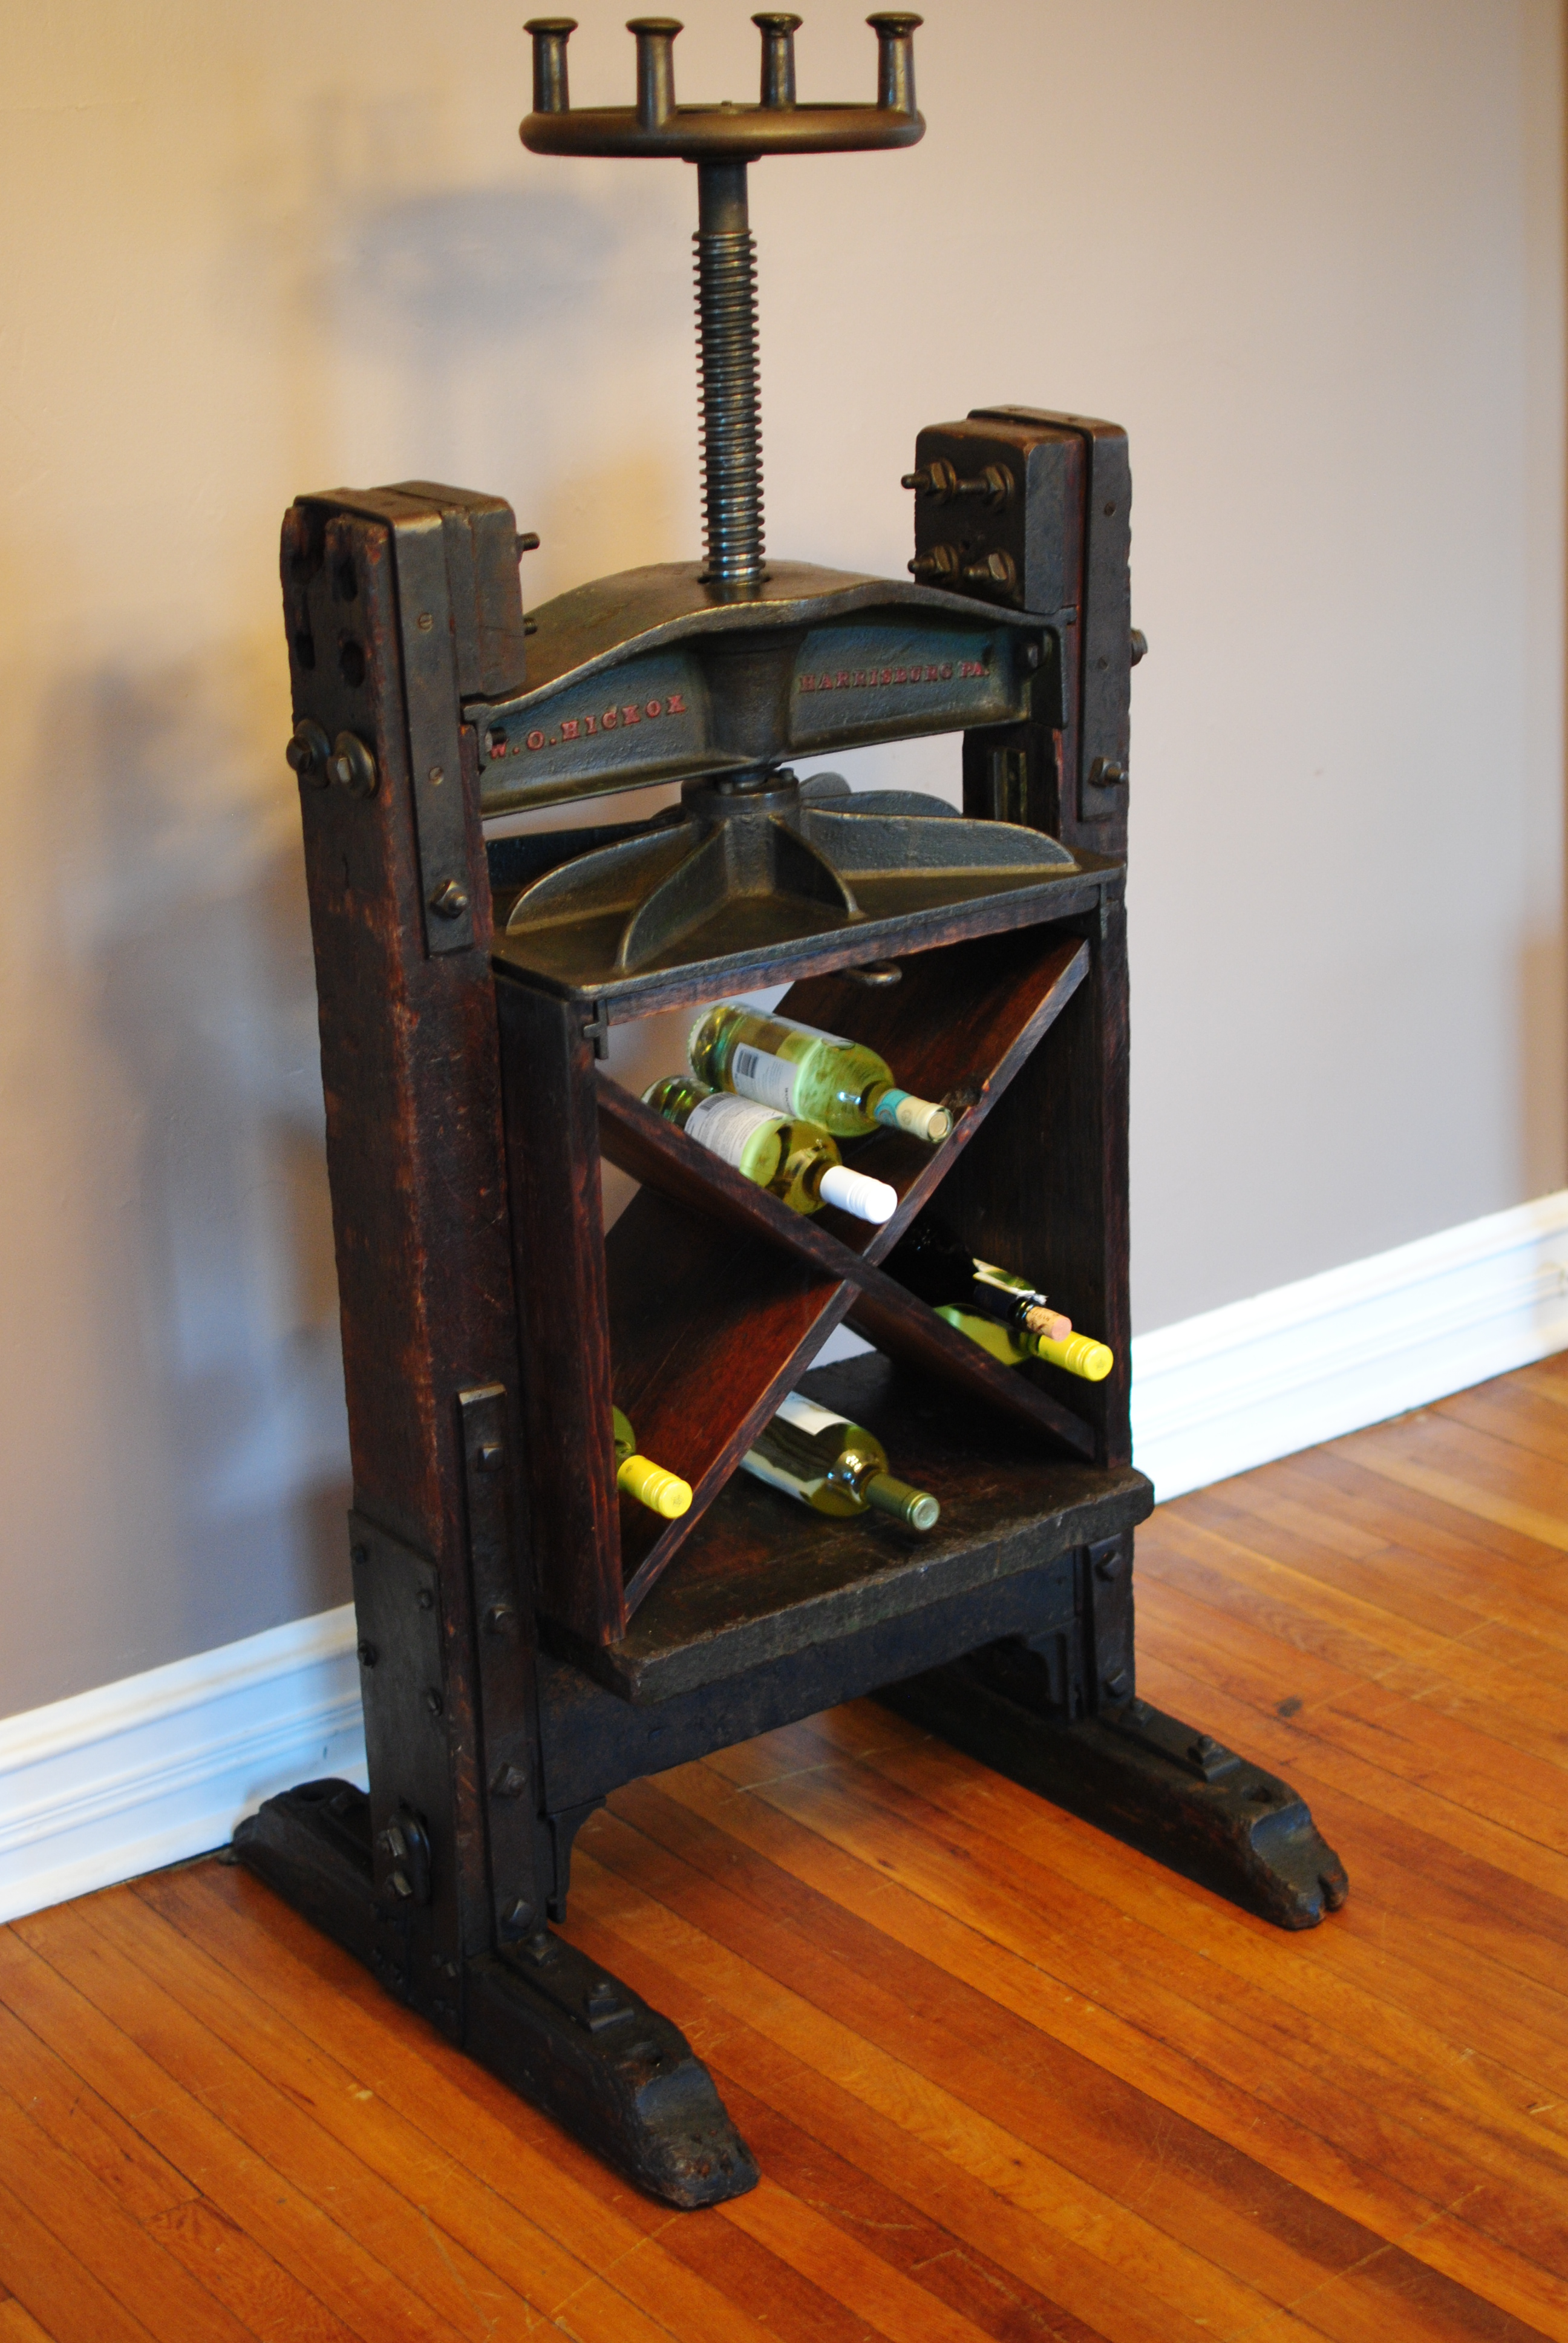 An 1860s Book Press repurposed into winebar storage and